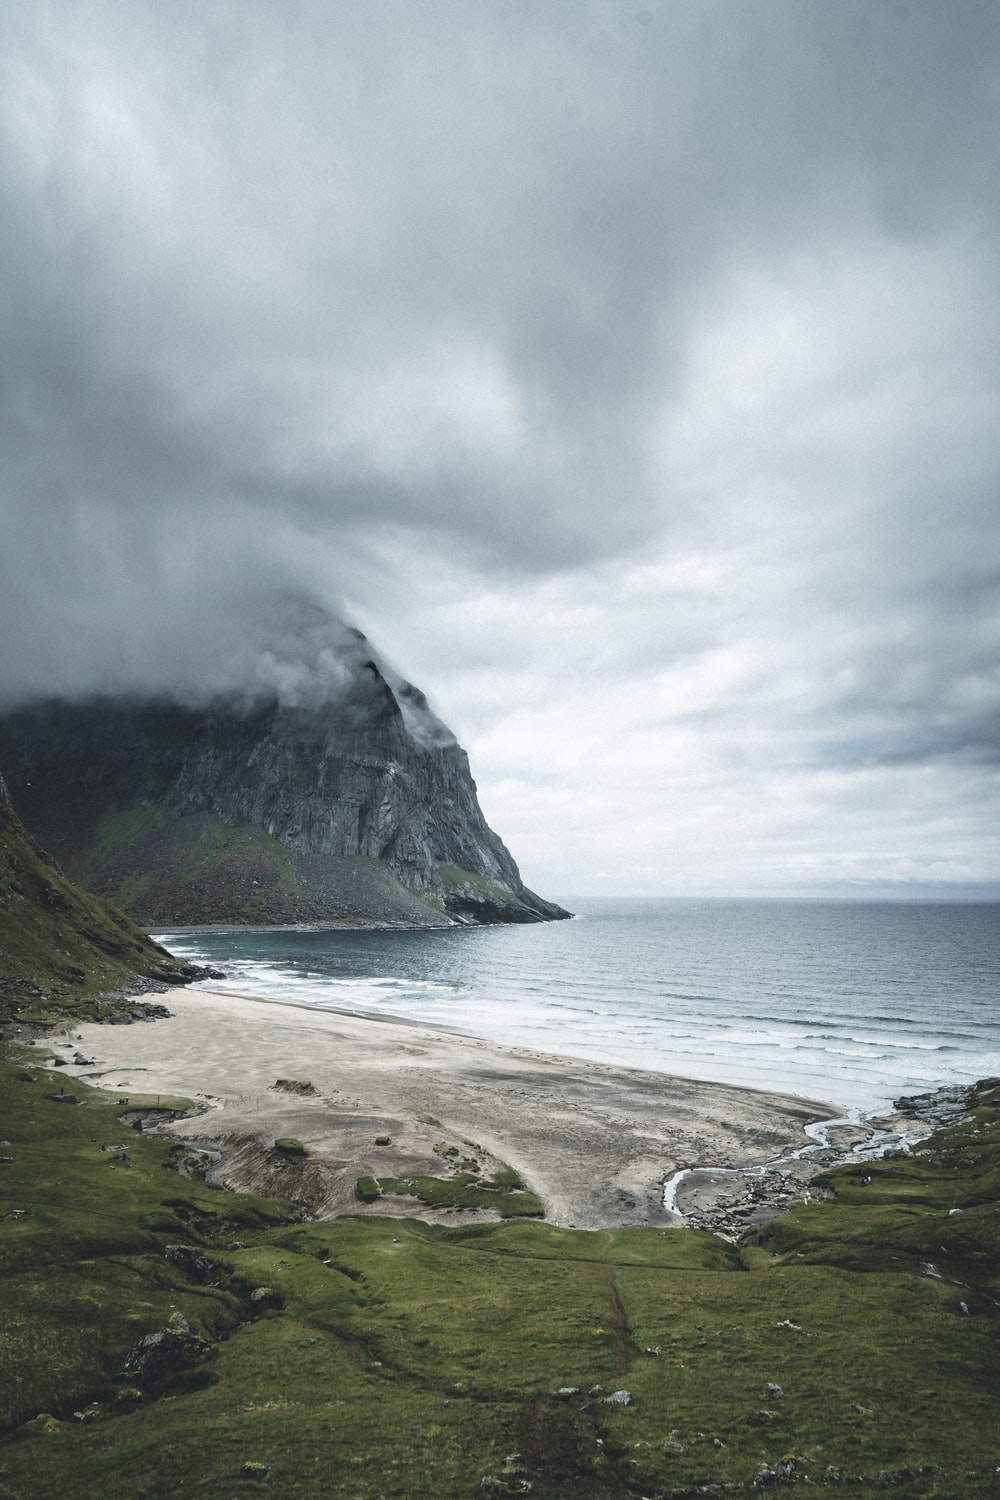 green and gray mountain beside body of water under cloudy sky during daytime